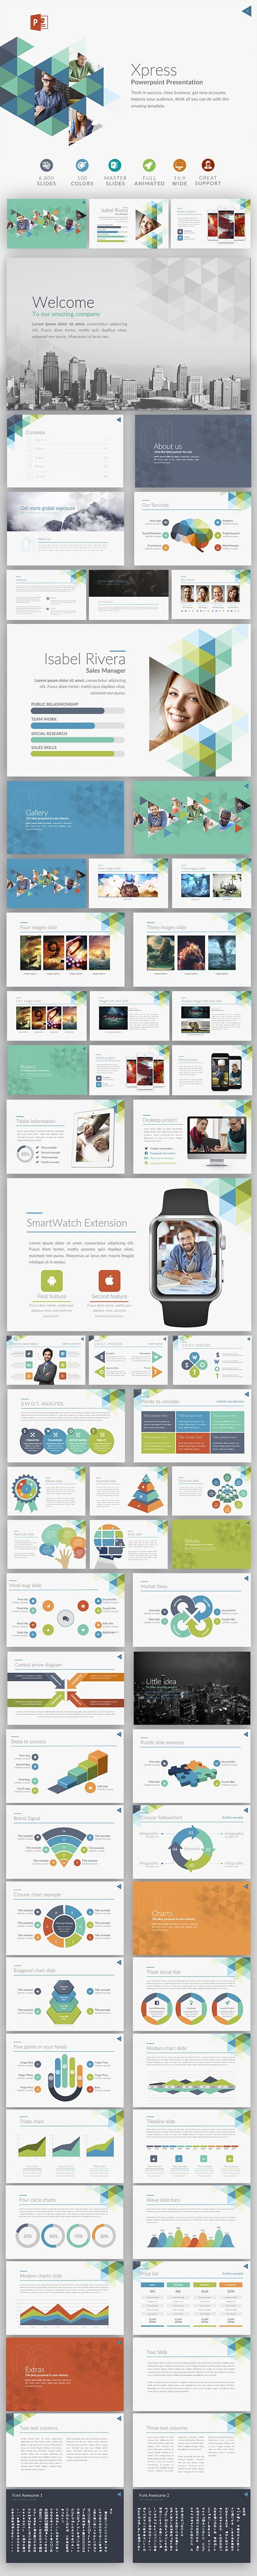 Xpress | Powerpoint template #1920x1080 #advertising #Campaign Pitch Brand #Chart Infographics #font awesome #mac presentation #$15